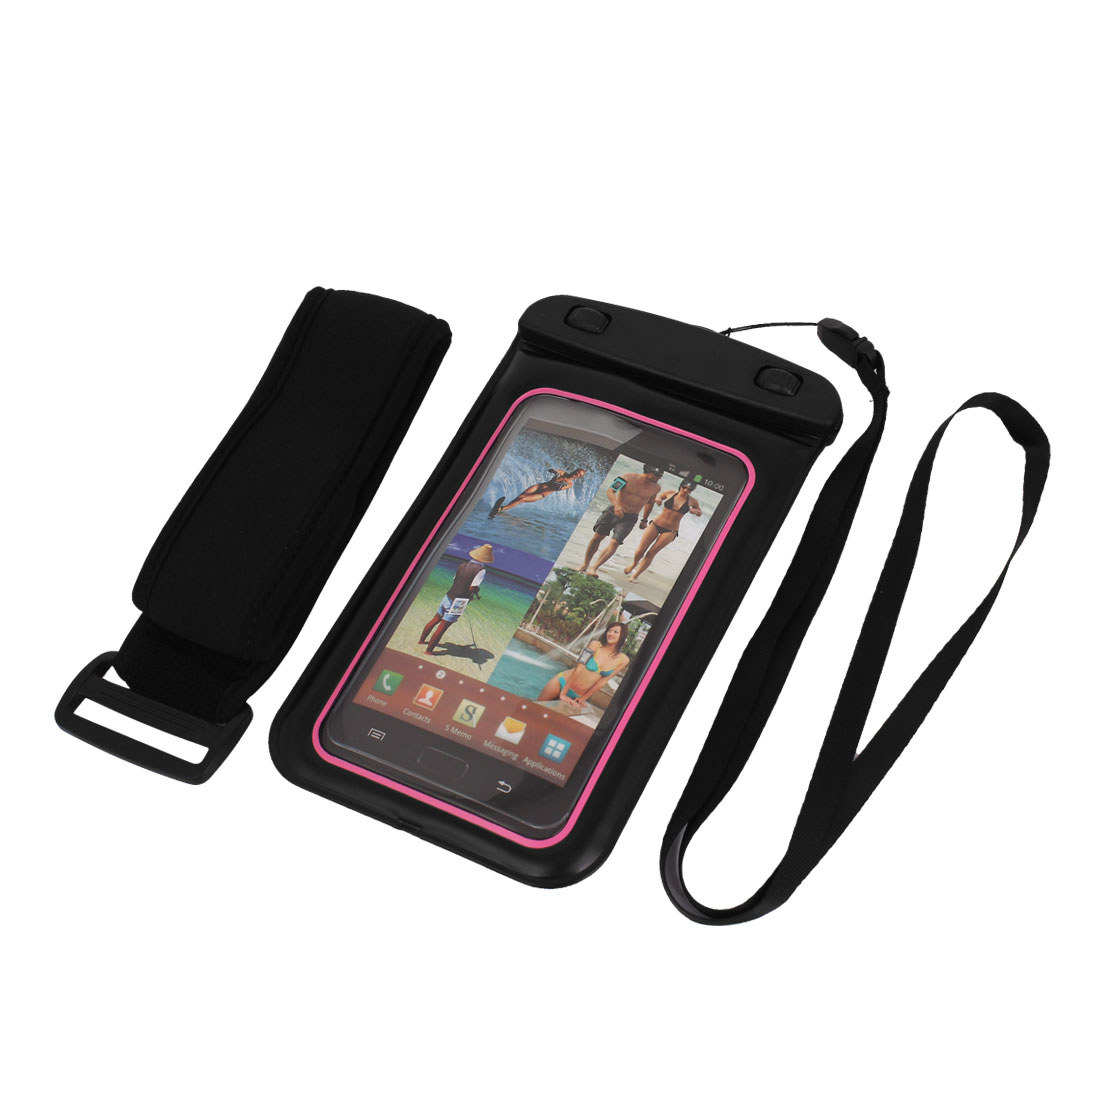 Unique Bargains Underwater Waterproof Case Dry Bag Cover Pouch Sleeve Black Pink for 5.5  Phone